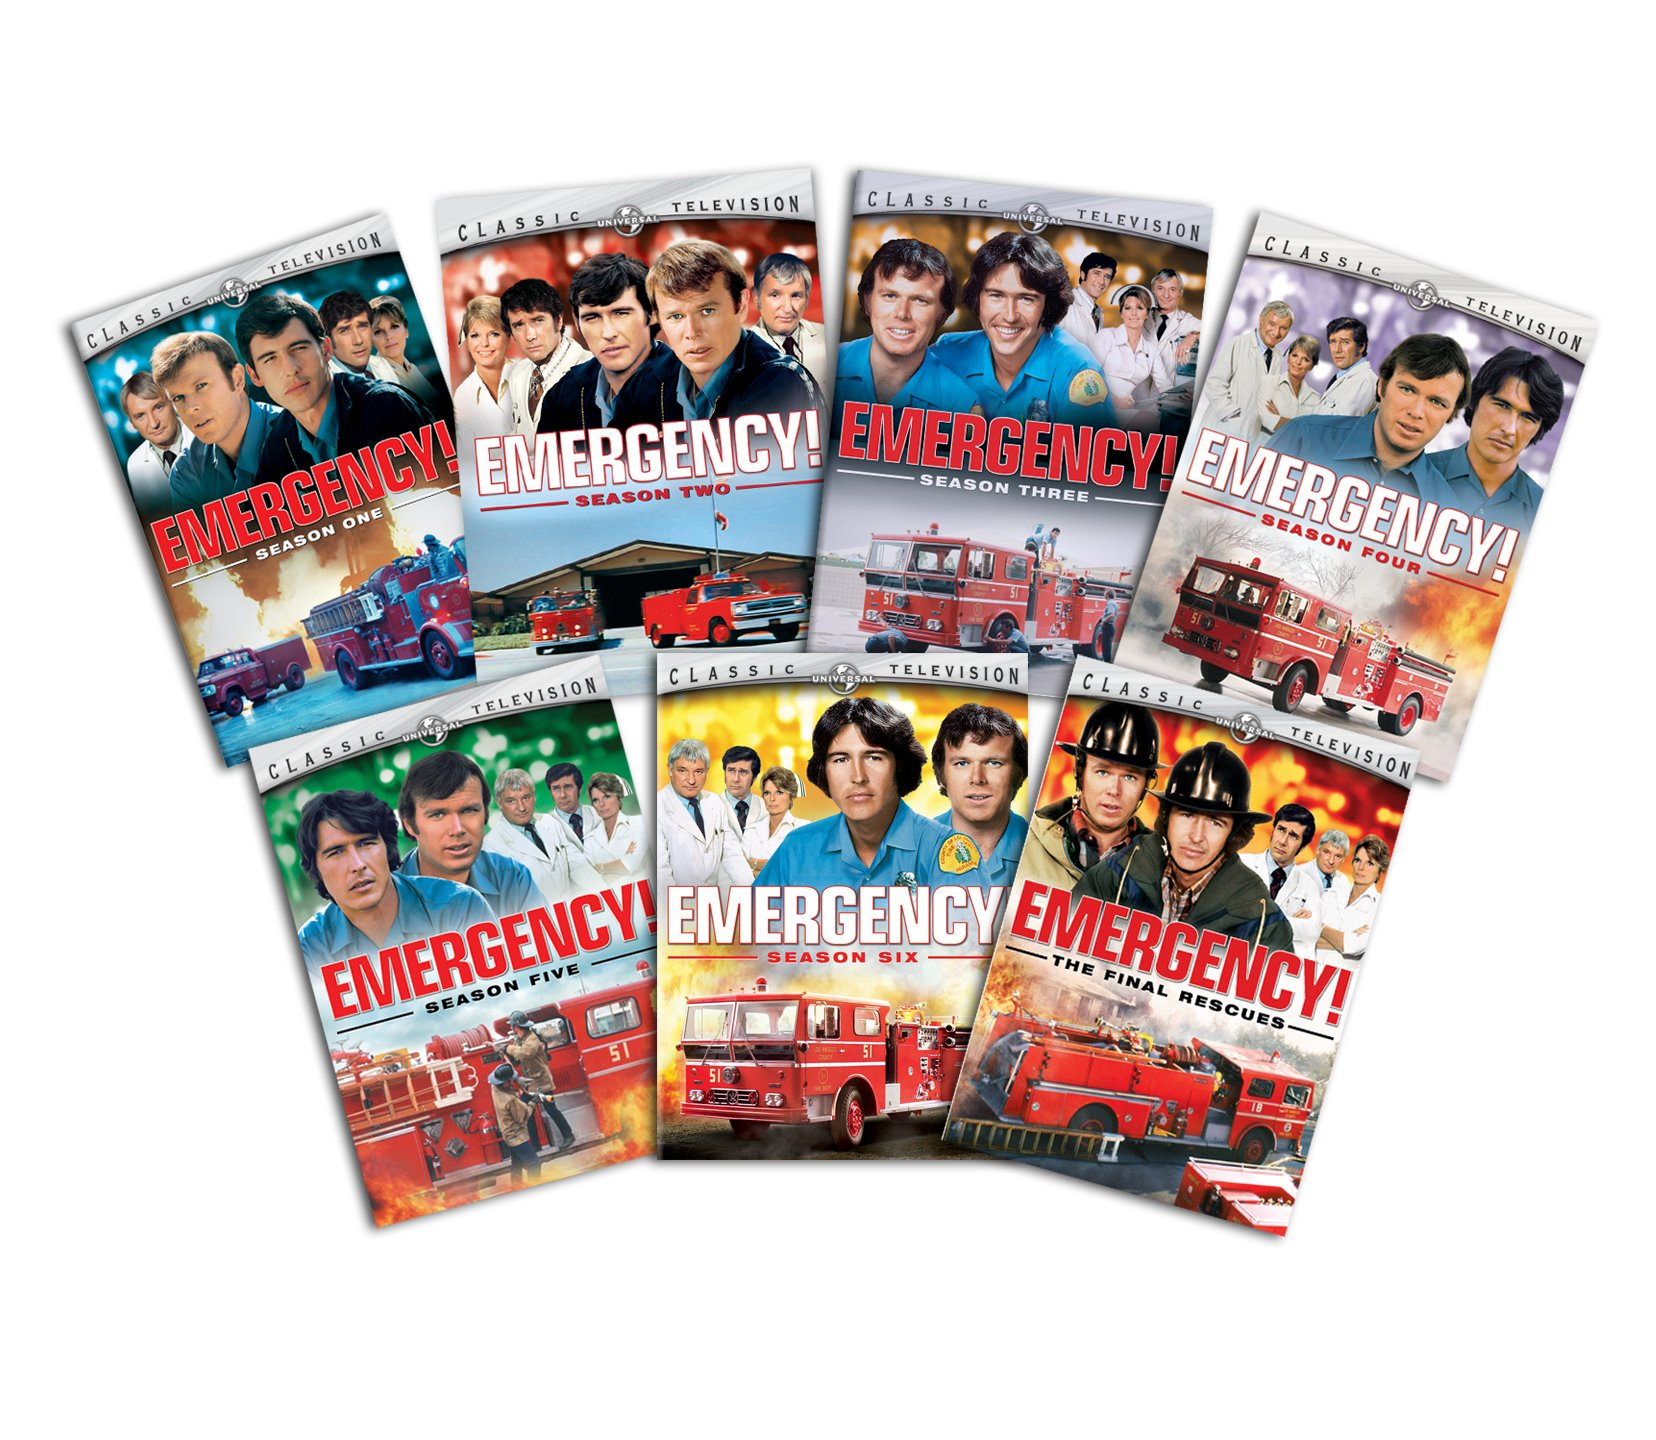 Emergency: The Complete Series by Universal Studios Home Entertainment